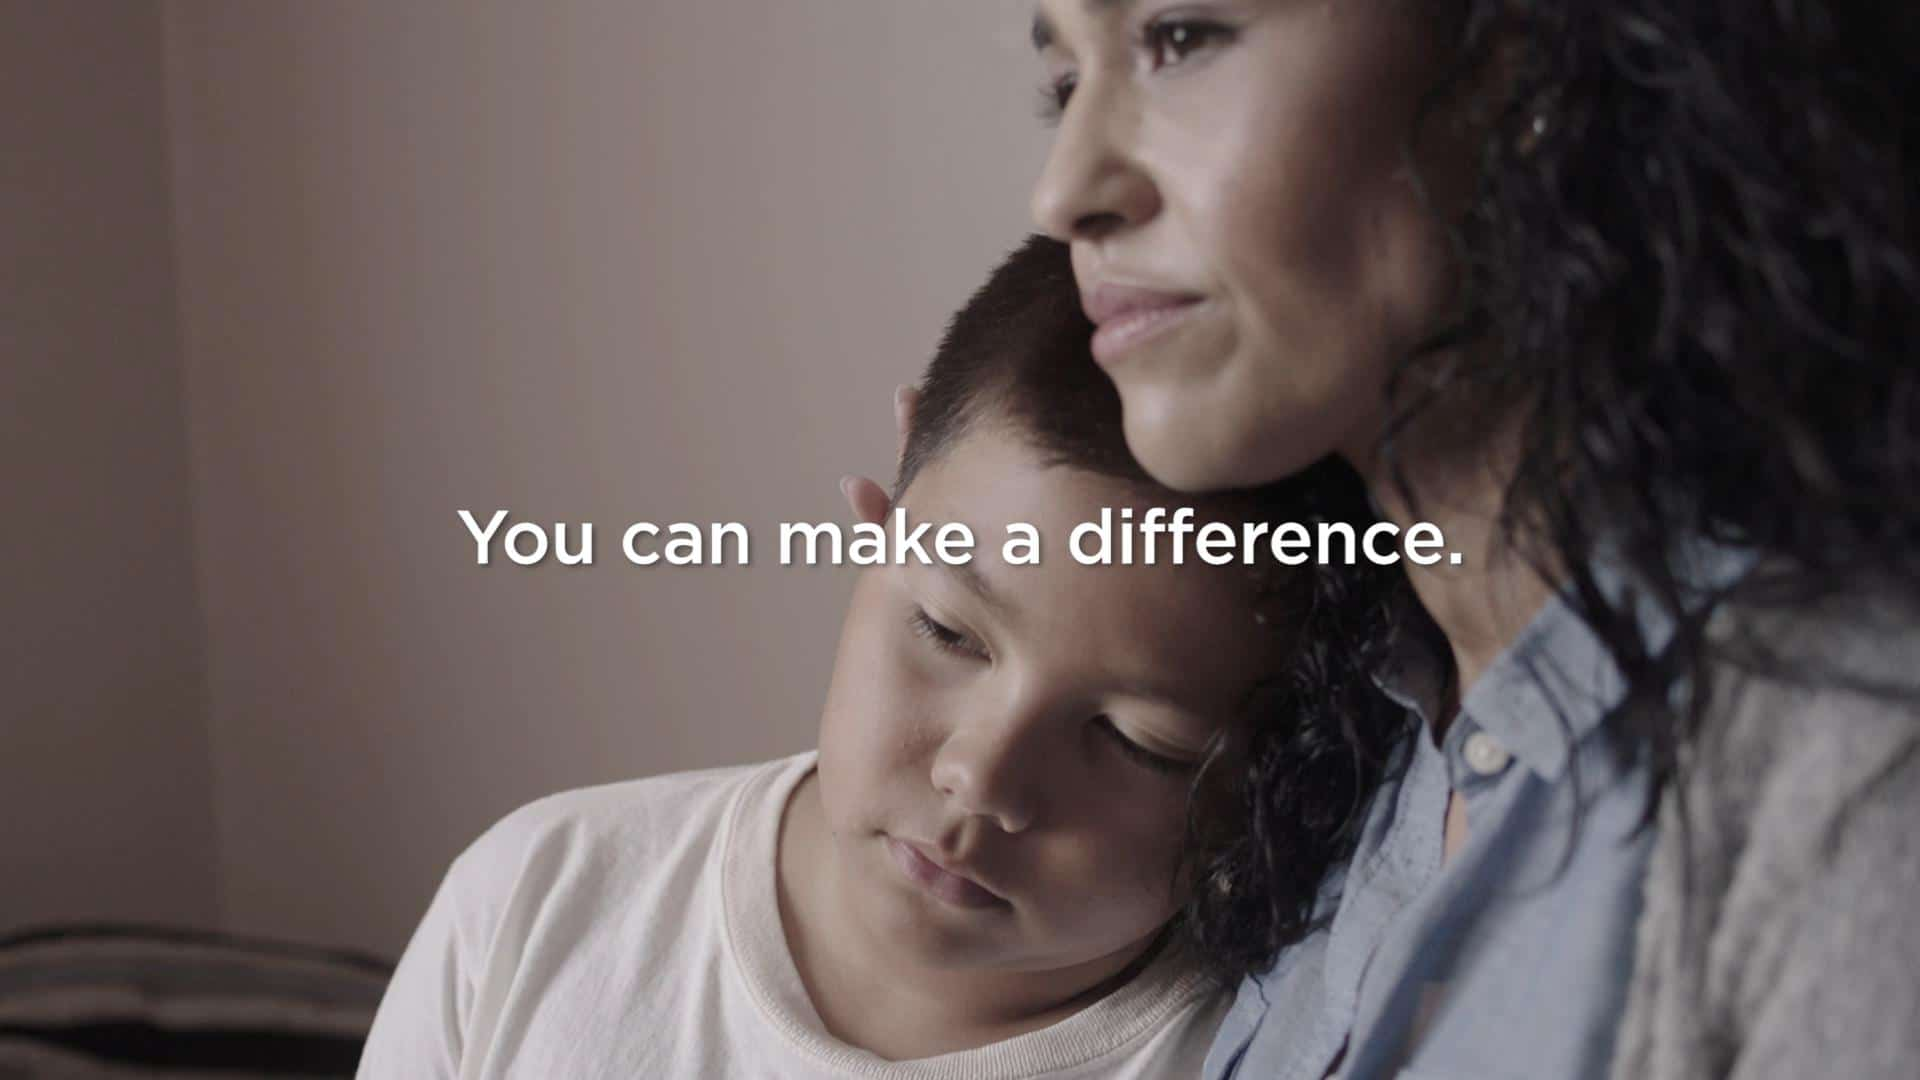 m booth jcpenney pair up campaign